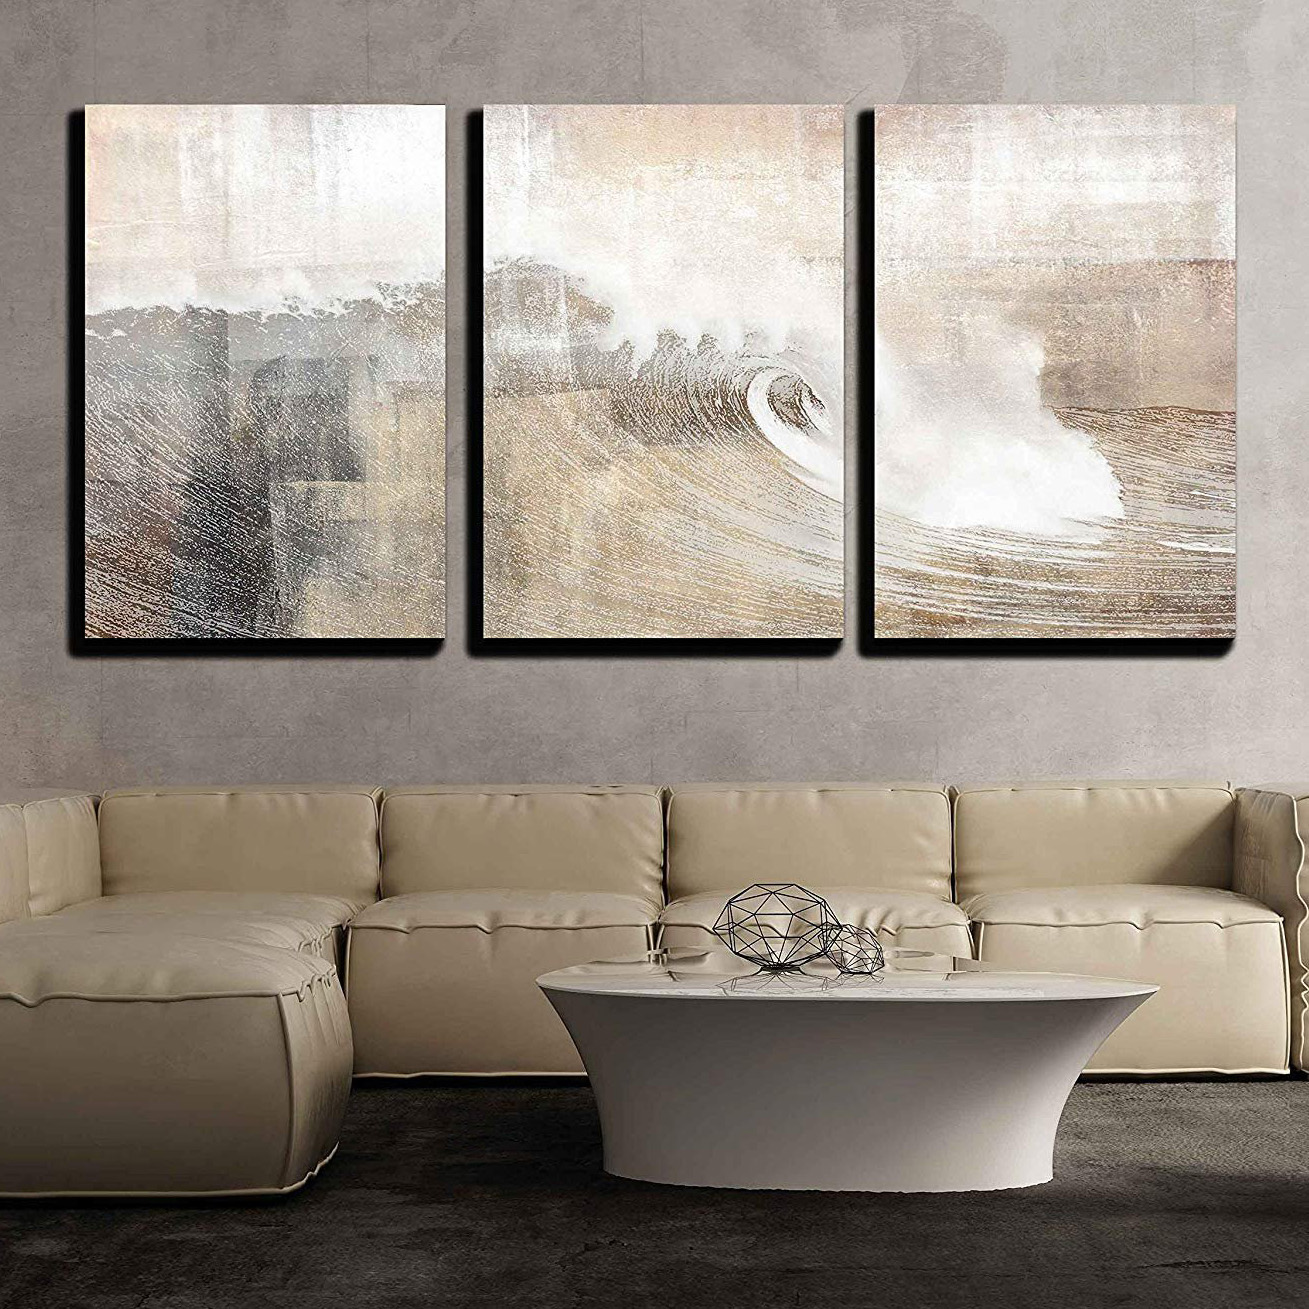 Abstract Huge Wave Composition - Canvas Art Wall Decor-16 x24 x3 Panels